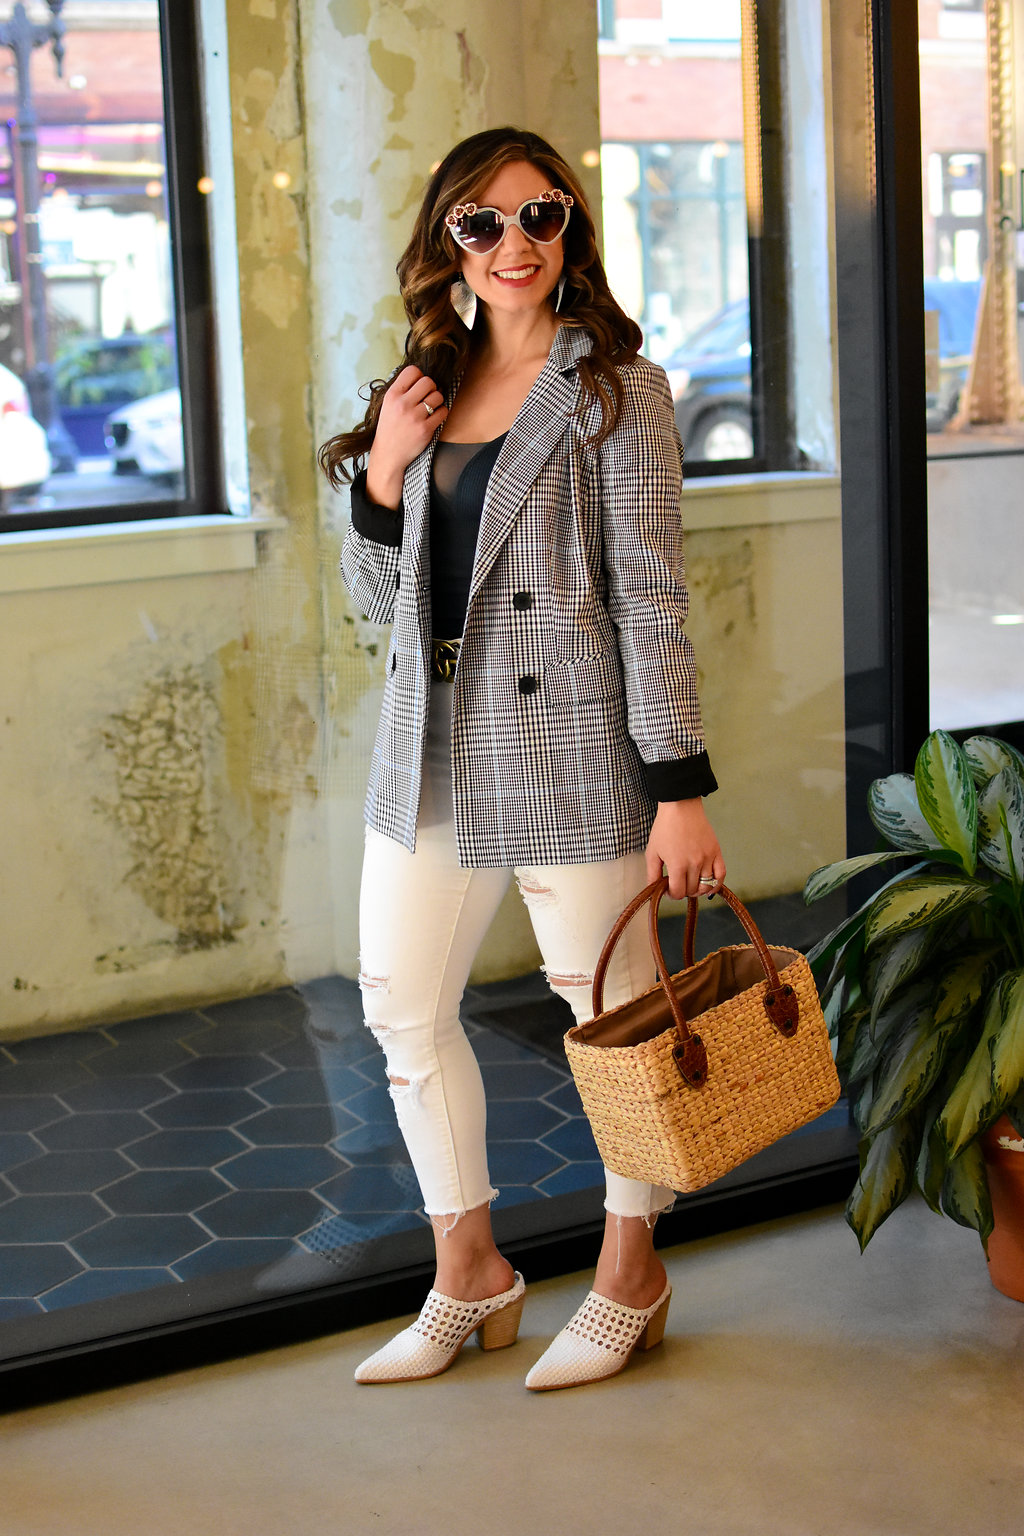 Checked Blazer styled by popular Chicago fashion blogger Glass of Glam